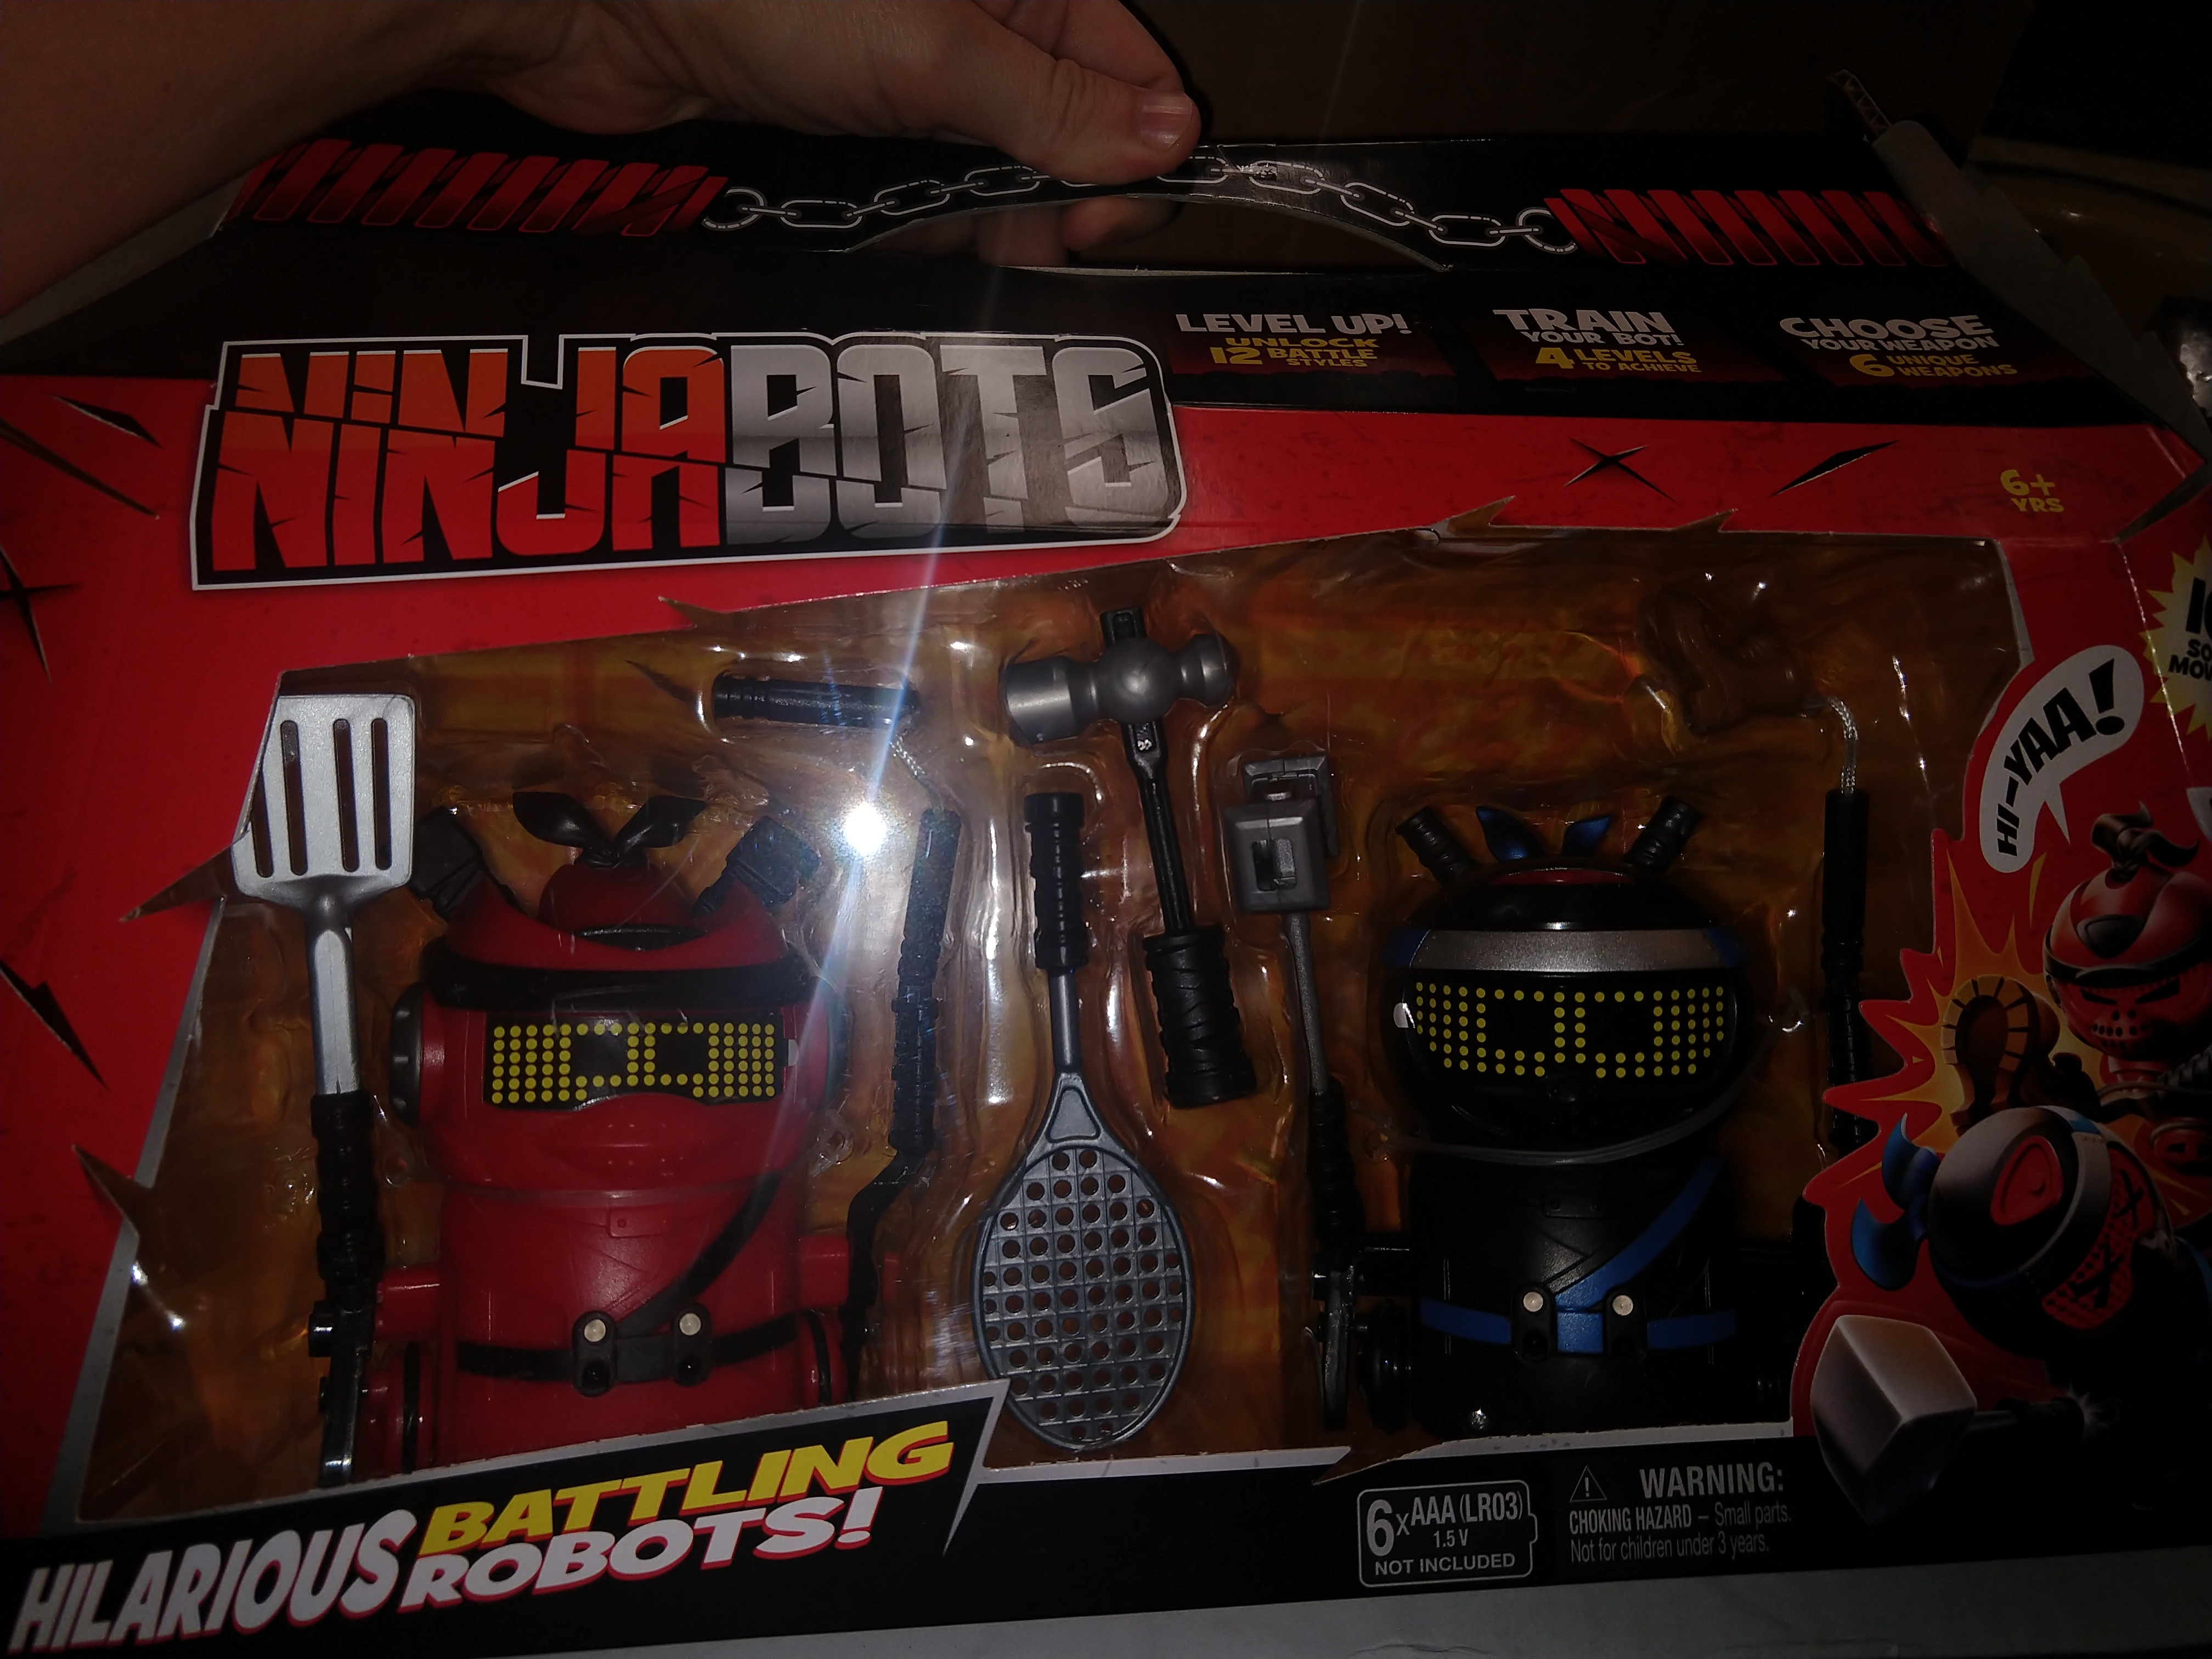 Ninja Bots 2-Pack Hilarious Battling Robots Red Black with 6 Fight Accessories